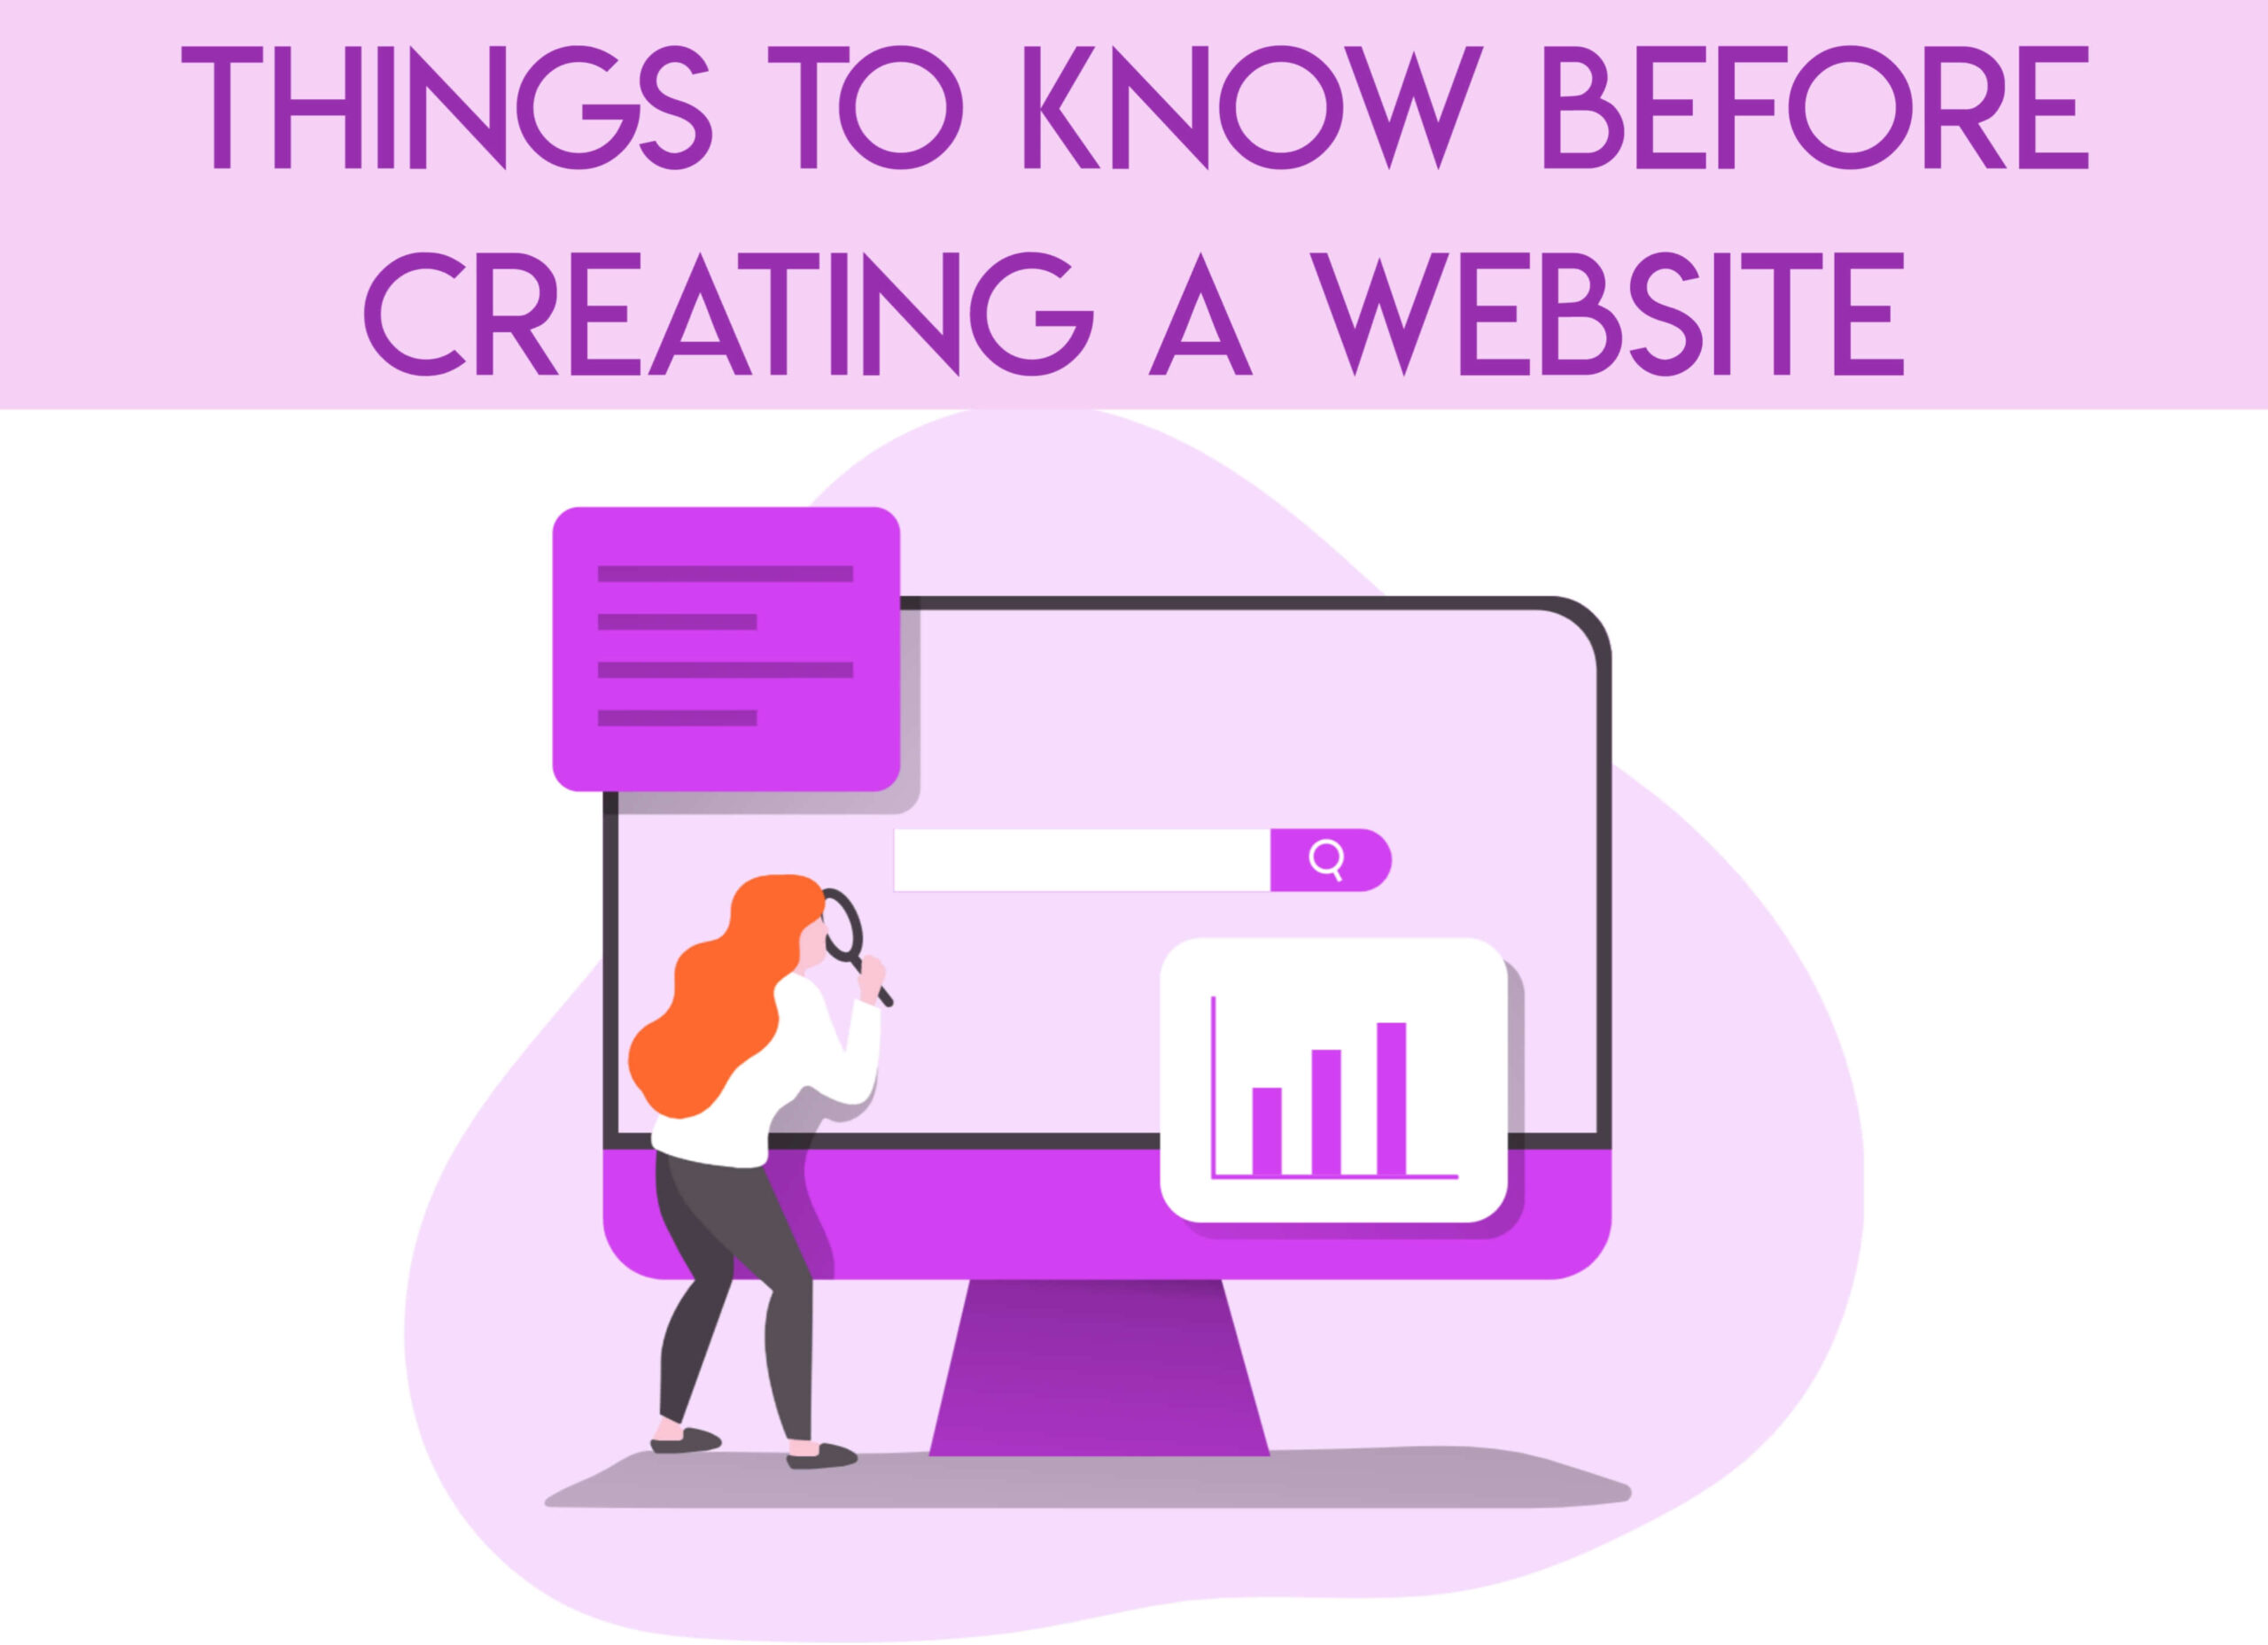 Things To Know Before Creating A Website